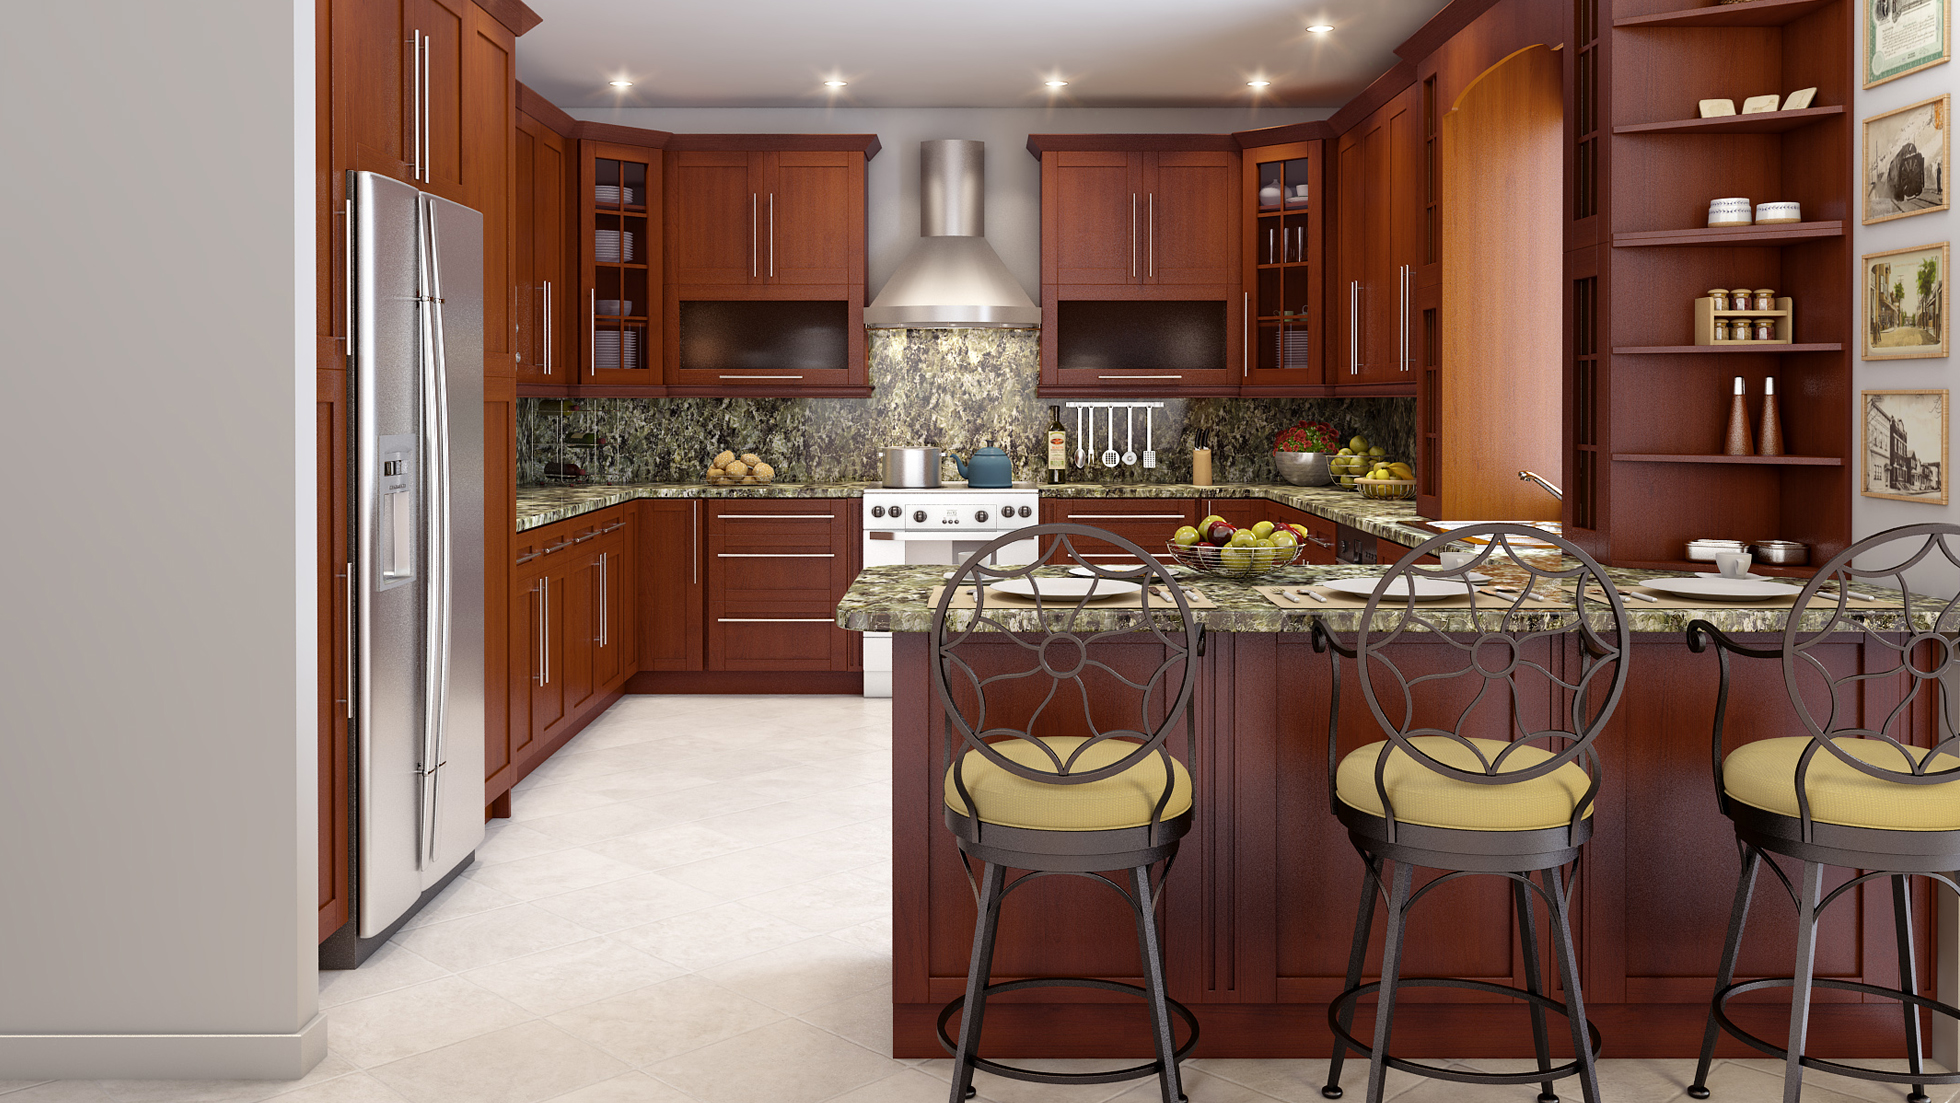 toscana kitchen cabinetry the toscana cabinetry line by adornus   rta kitchen cabinets  rh   rtacabinetmall com